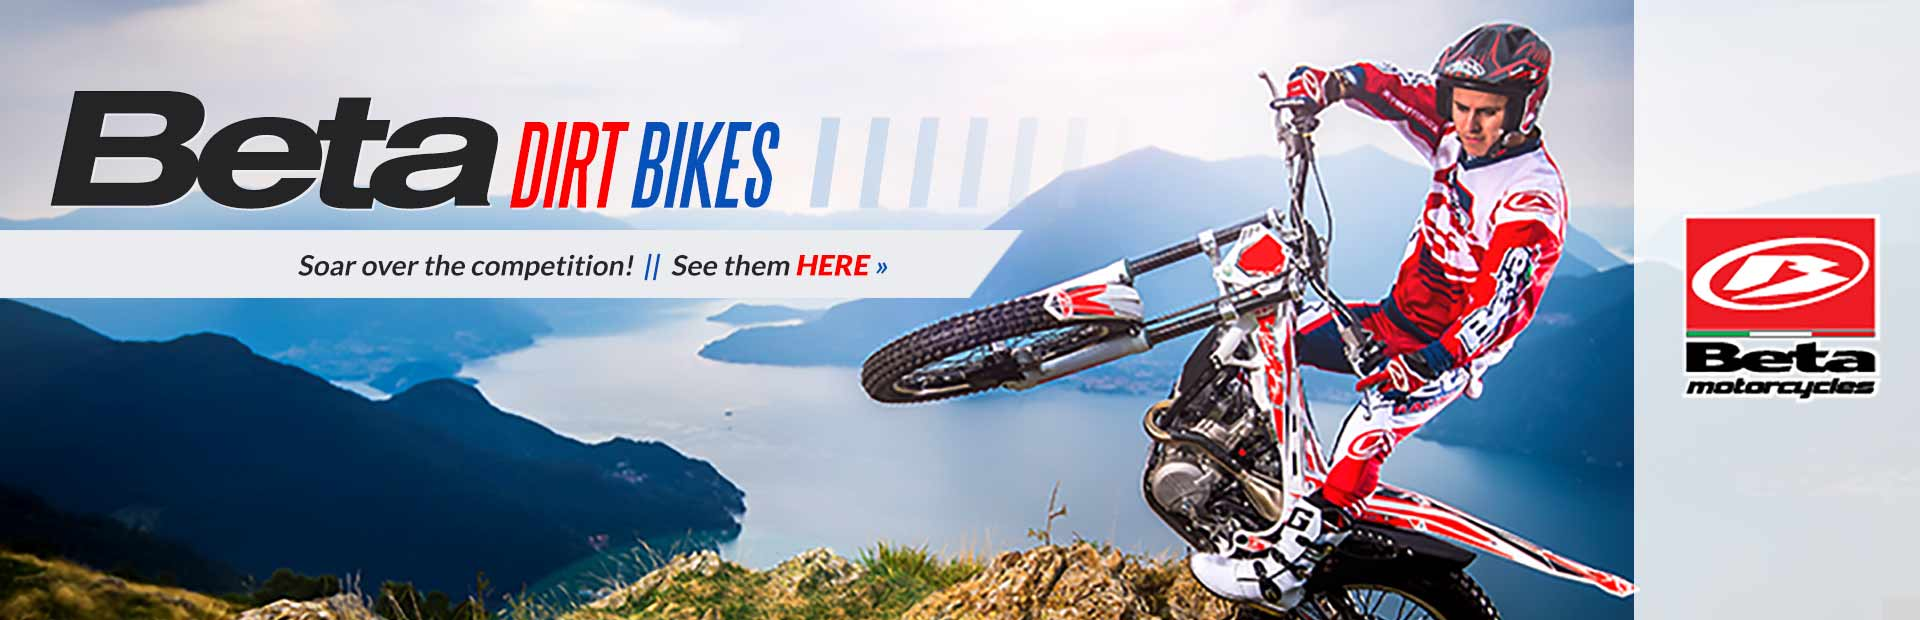 Click here to view our selection of Beta dirt bikes!